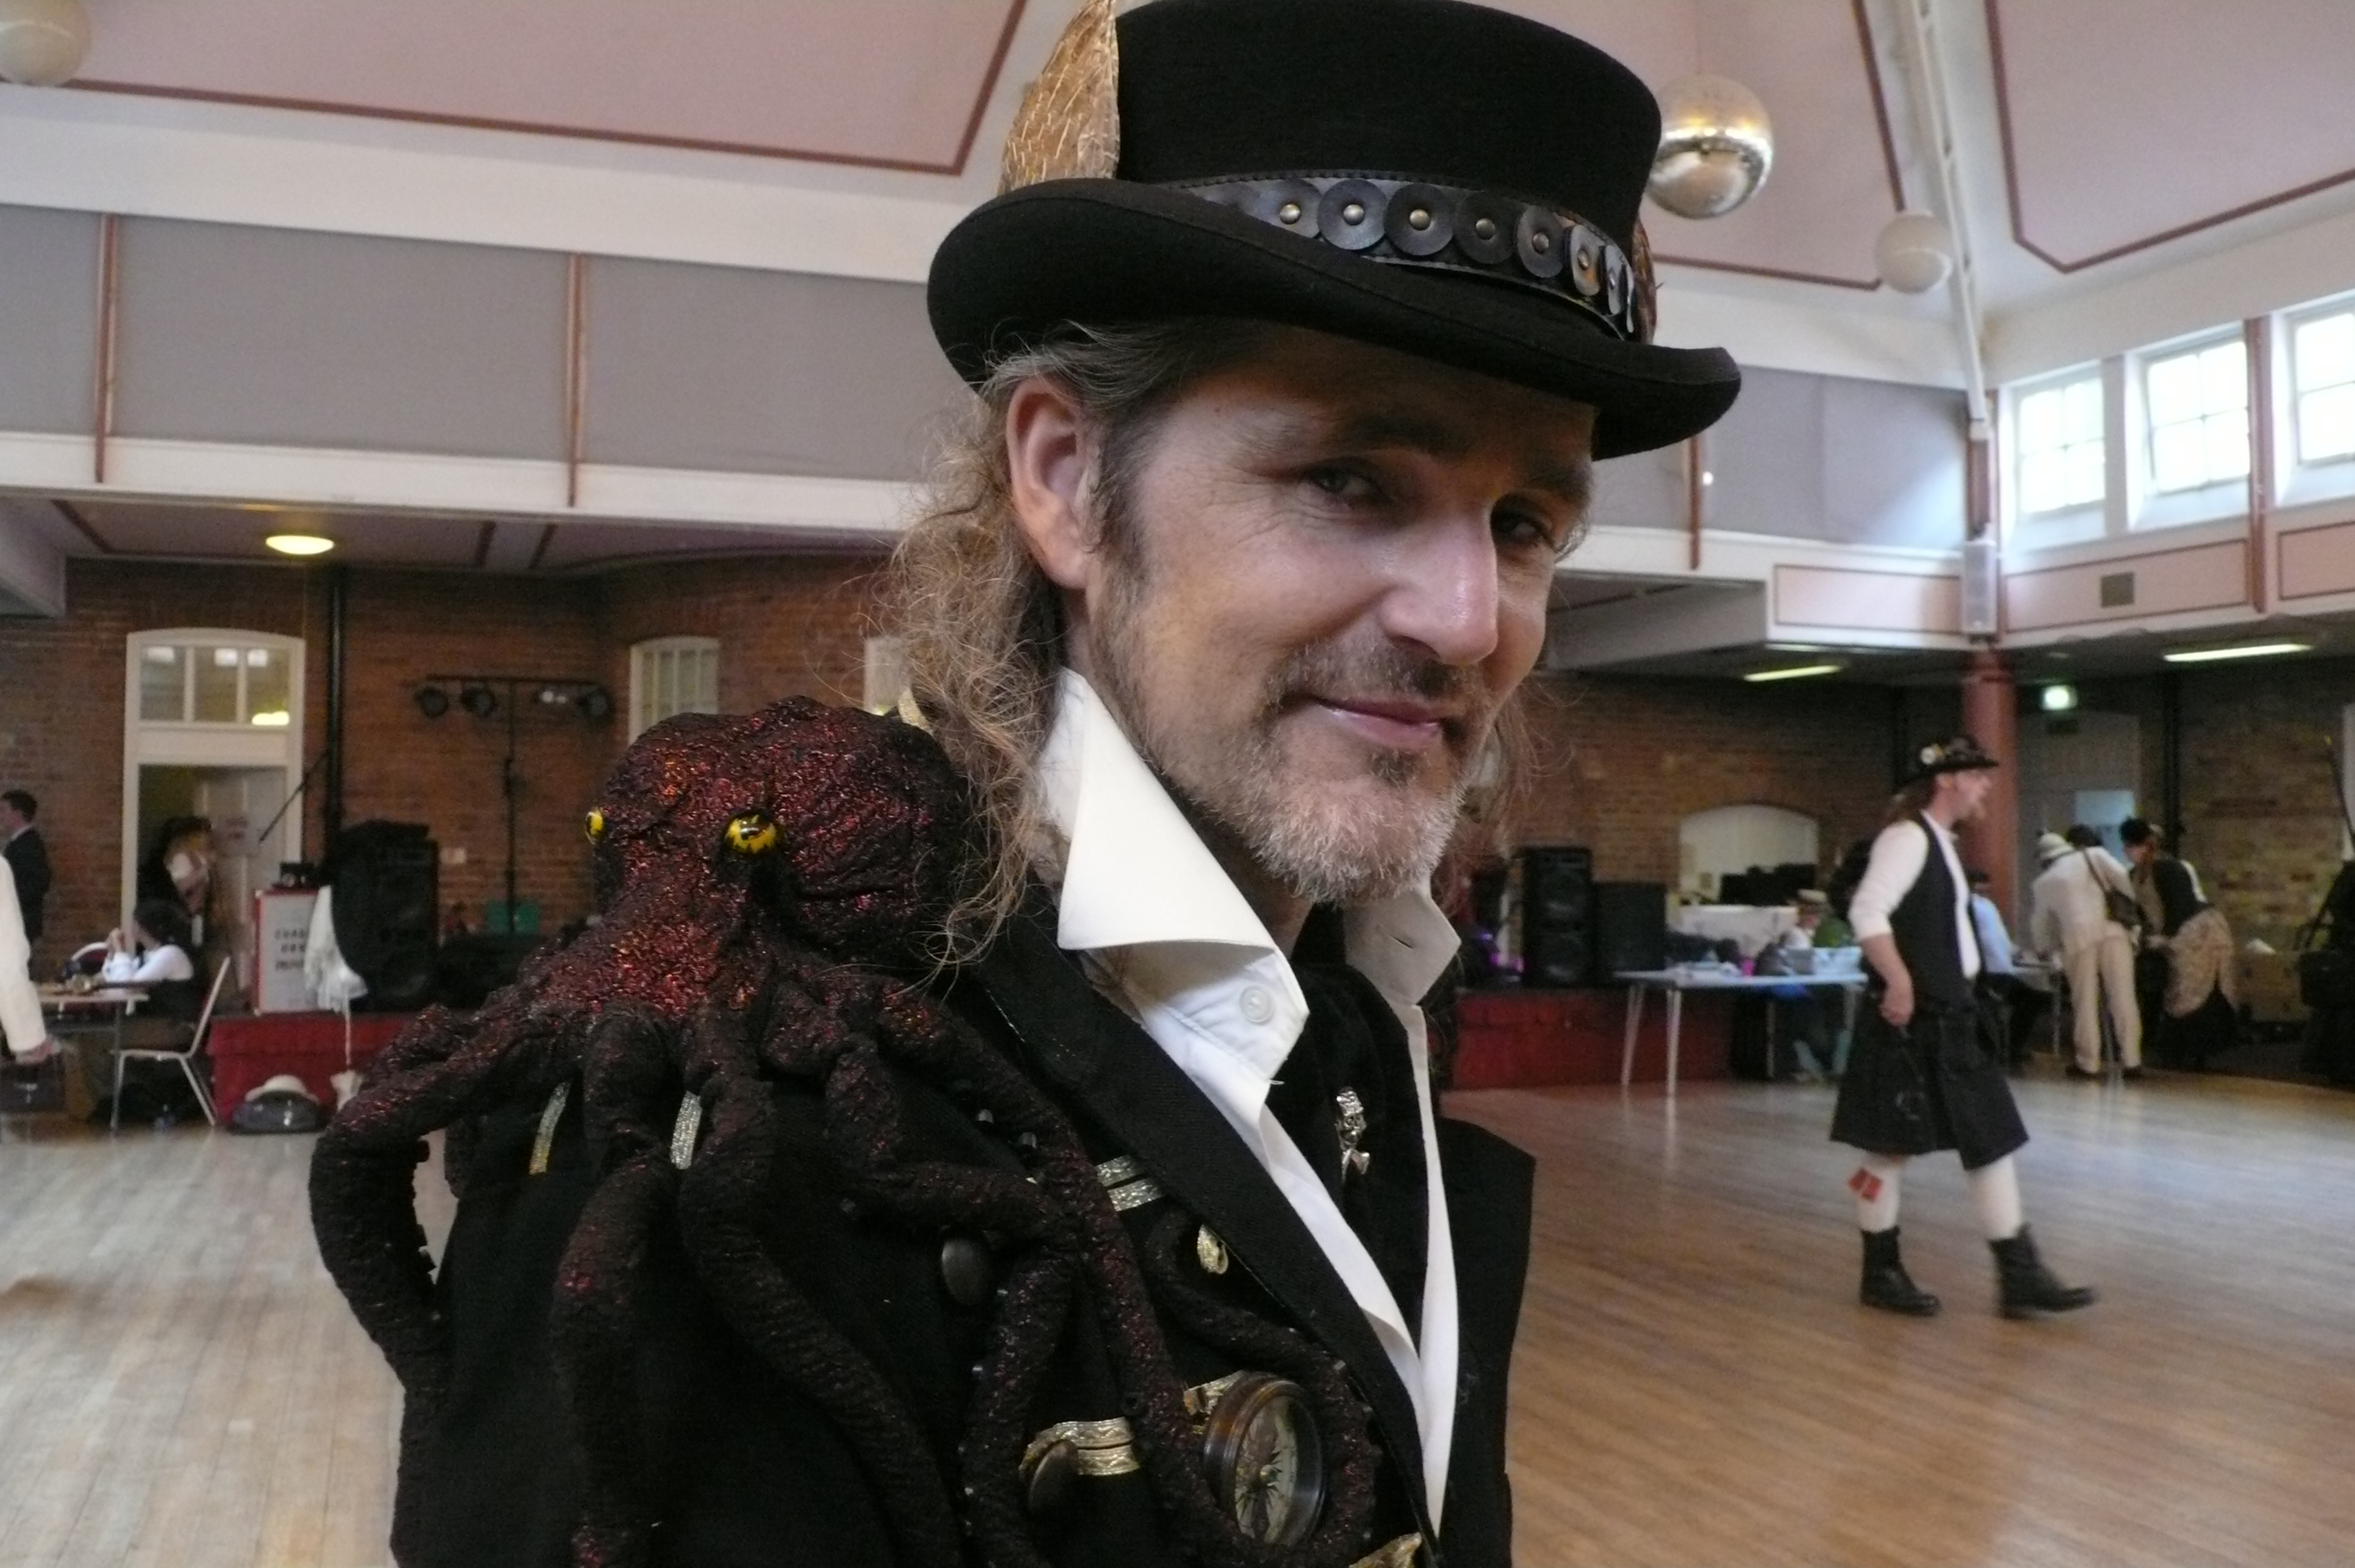 Steampunk Across the Pond: Weekend at The Asylum